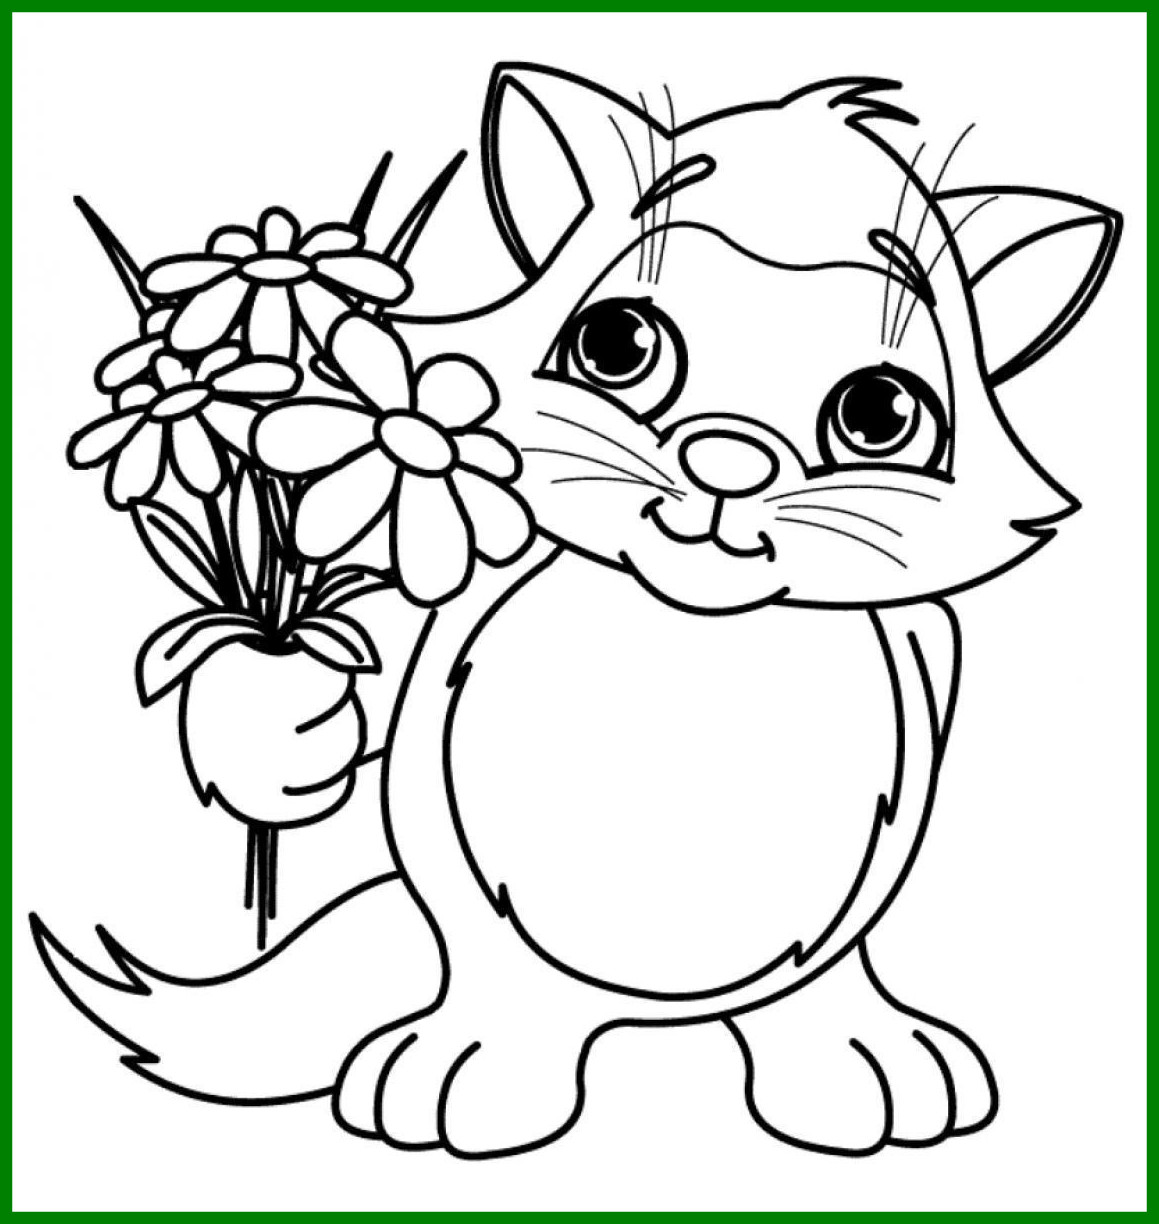 1159x1224 Marvelous Cute Kitten Coloring Pages Fairy Picture For Inspiration